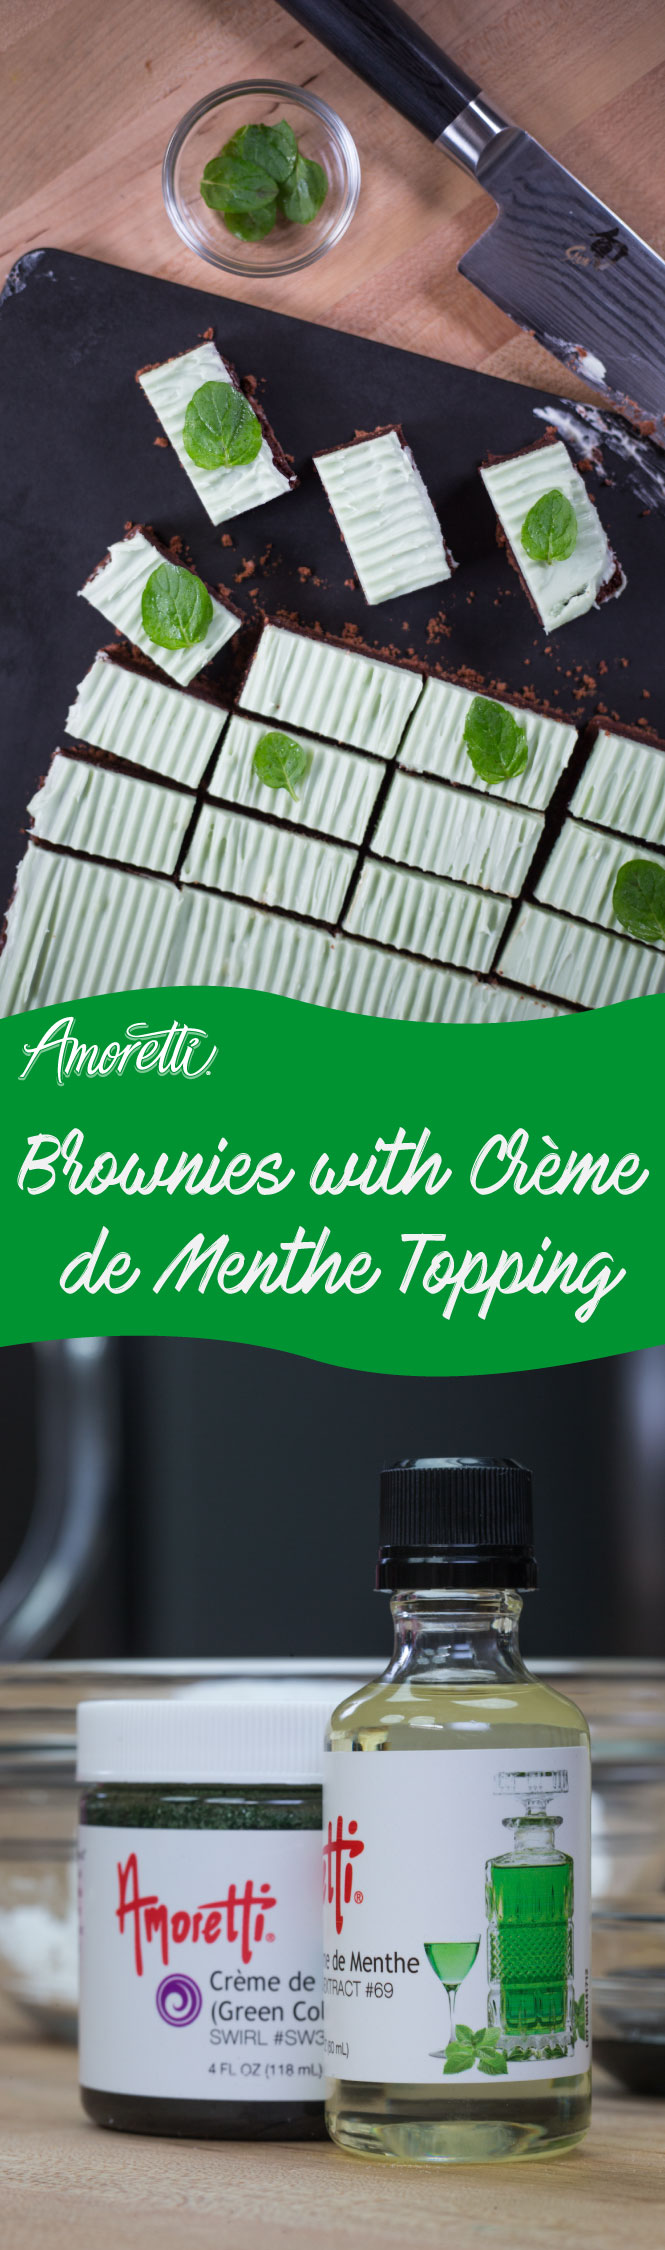 Our recipe puts a spin on a regular brownie by adding a crème de menthe cream cheese topping!